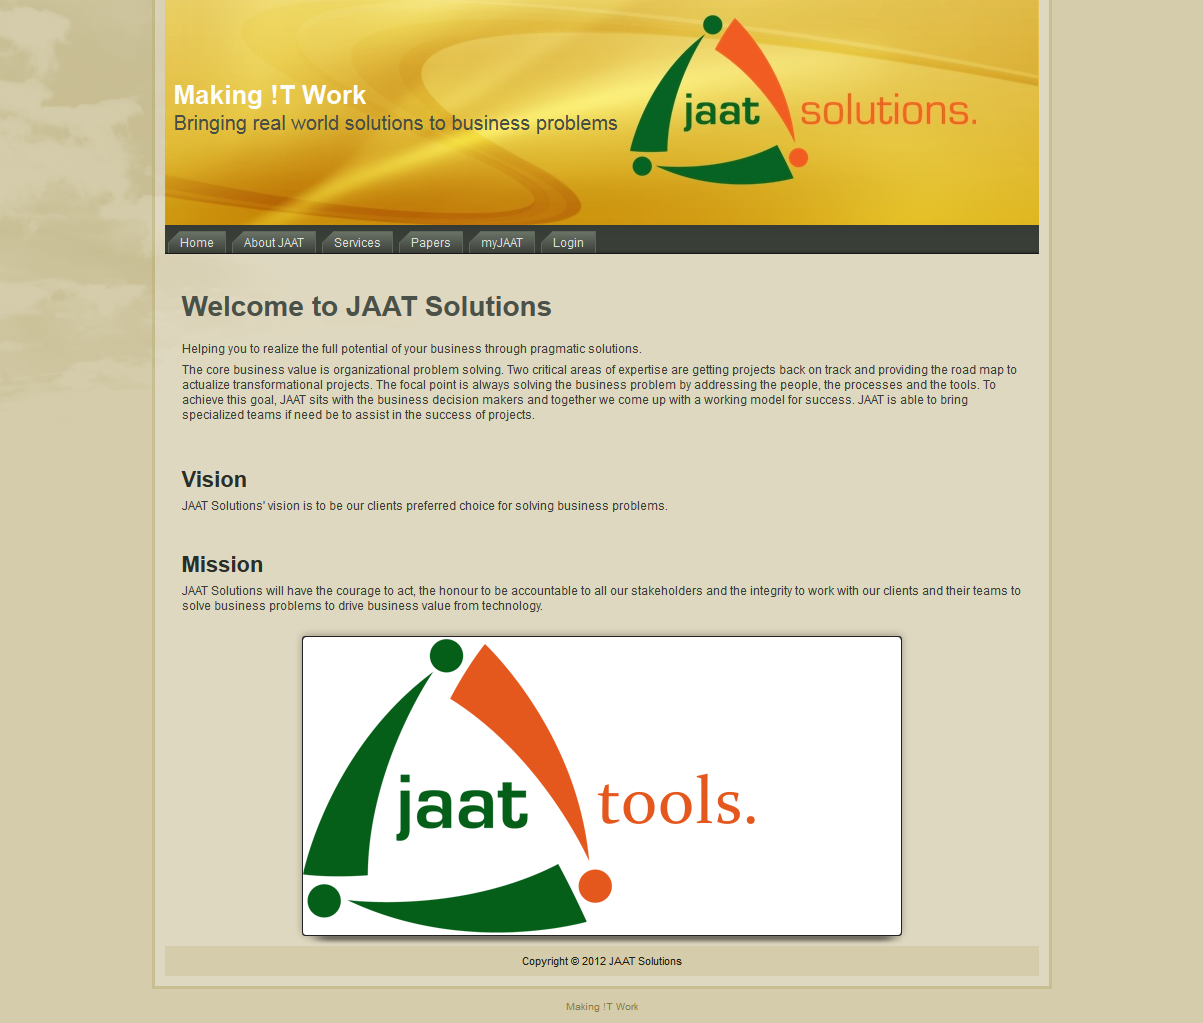 JAAT Solutions -- Making IT Work